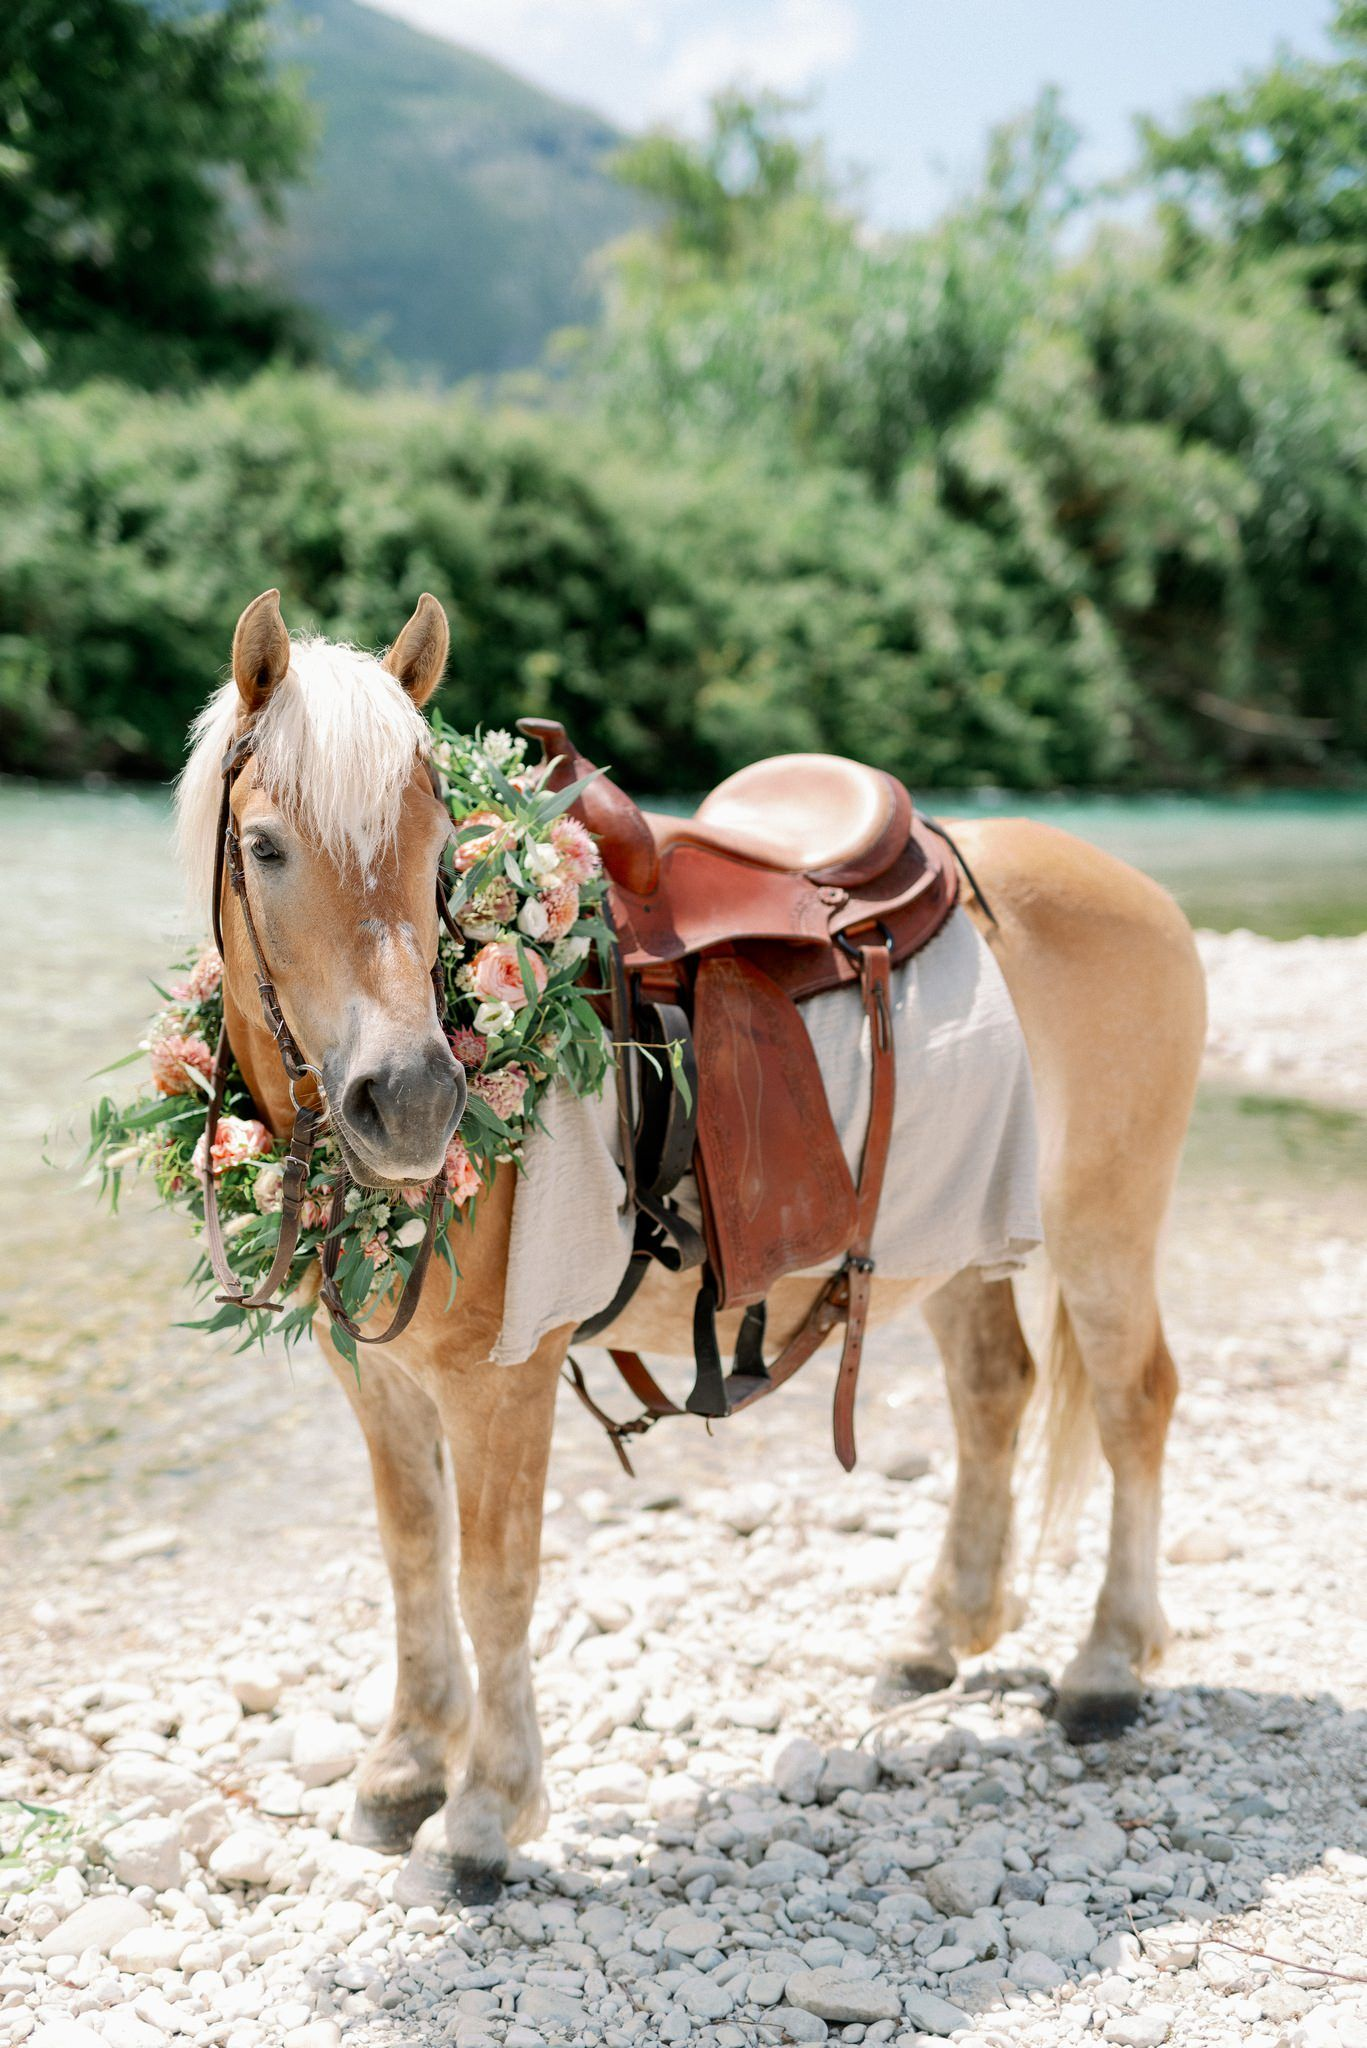 horse in acheron river greece